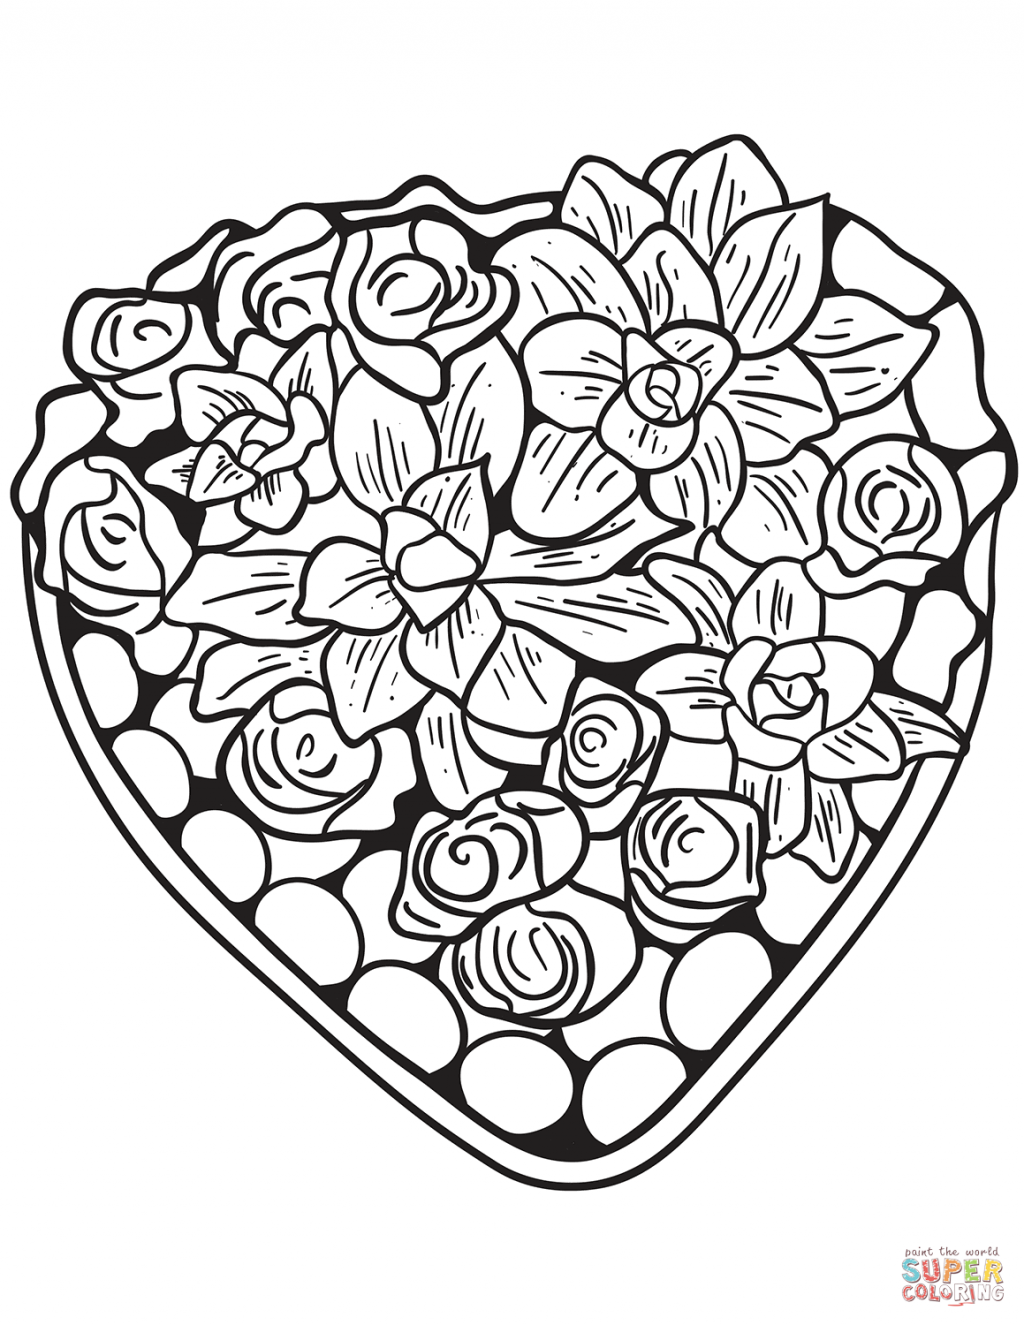 Bleeding Heart Flower Drawing   Free download on ClipArtMag